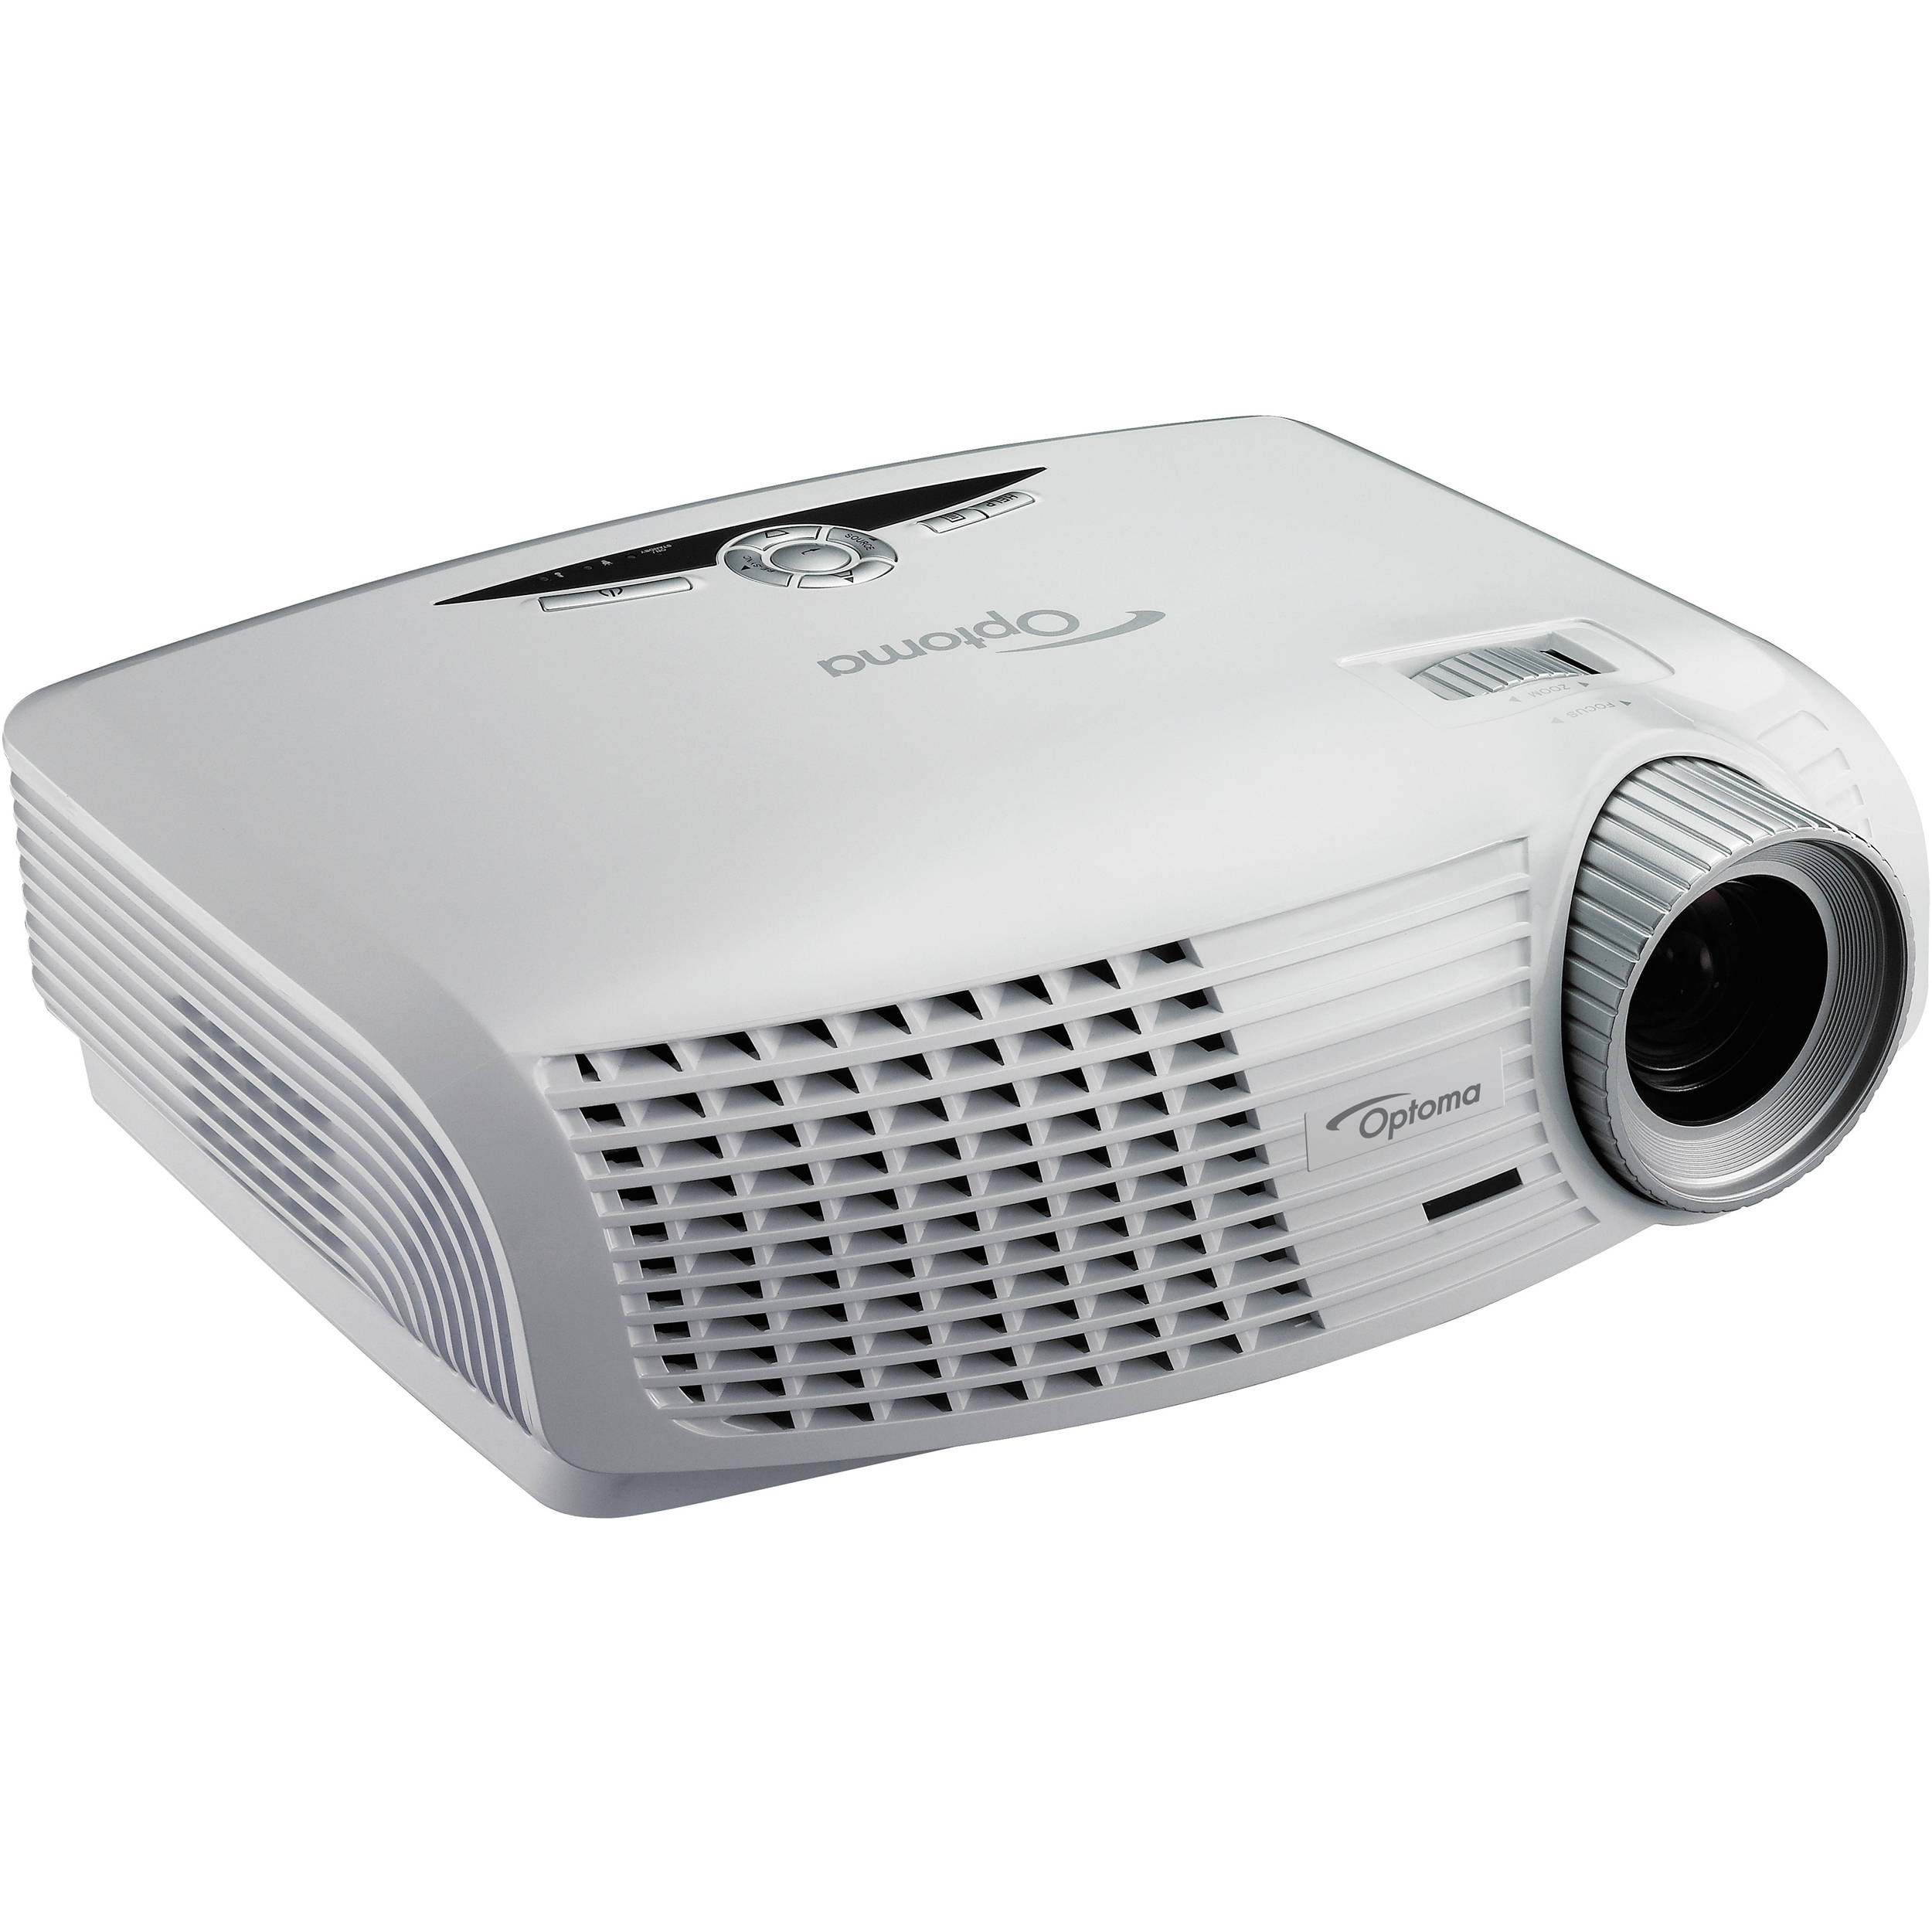 Optoma technology hd25e full hd 1080p dlp 3d projector for Hd projector